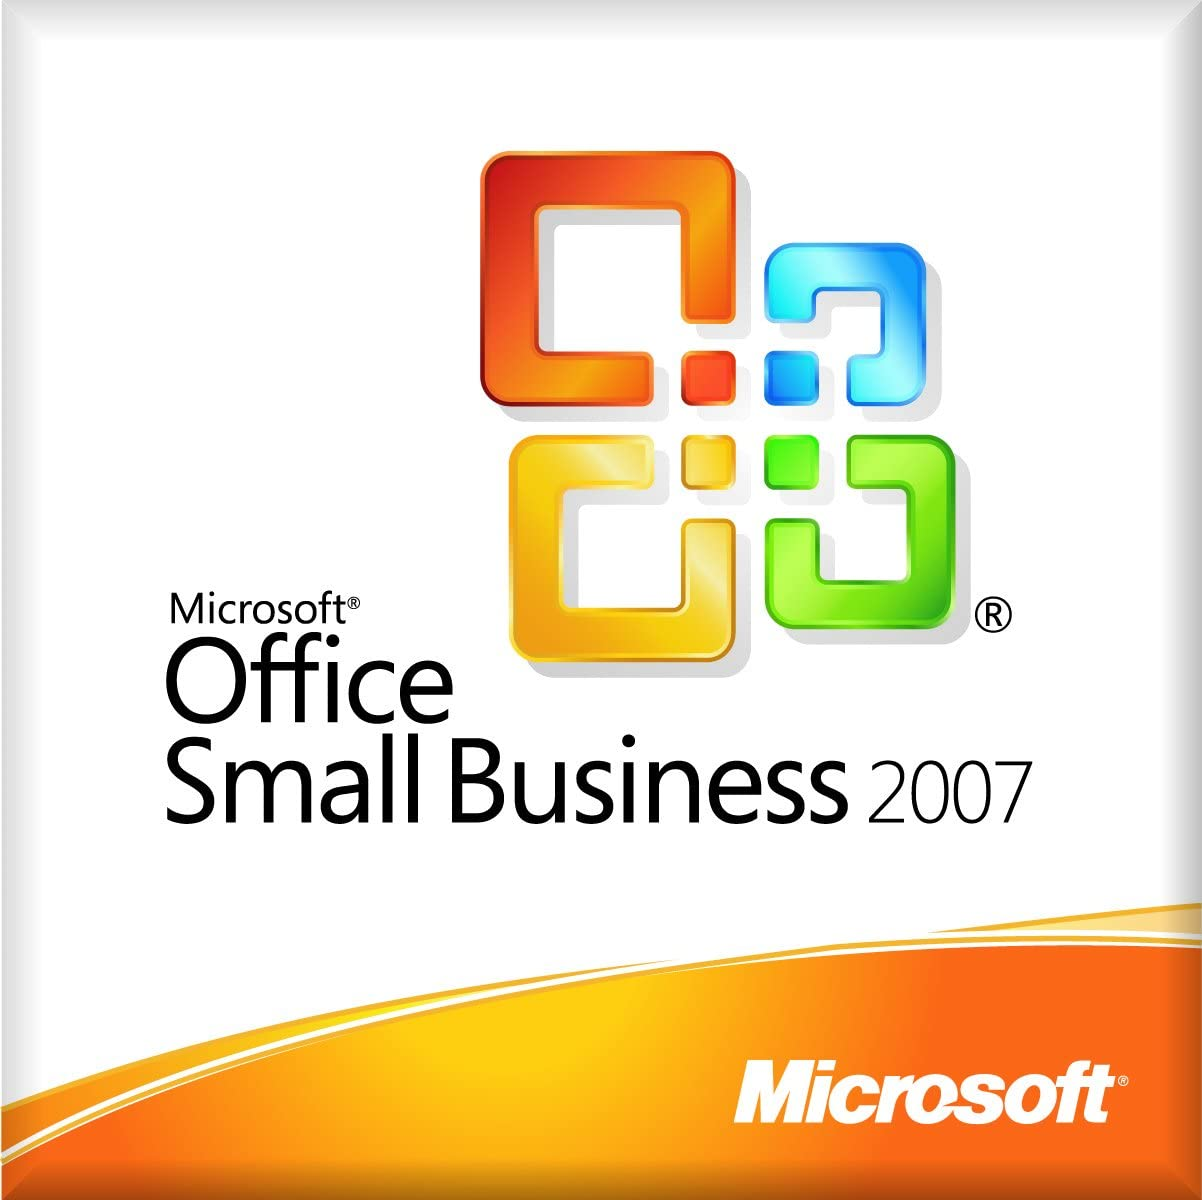 Microsoft Office Small Business 2007, V2, OEM, 1pk, MLK, EN - Suites de programas (V2, OEM, 1pk, MLK, EN, Intel Pentium 500MHz, PC, ENG, Microsoft Windows XP Service Pack SP2 +; Microsoft